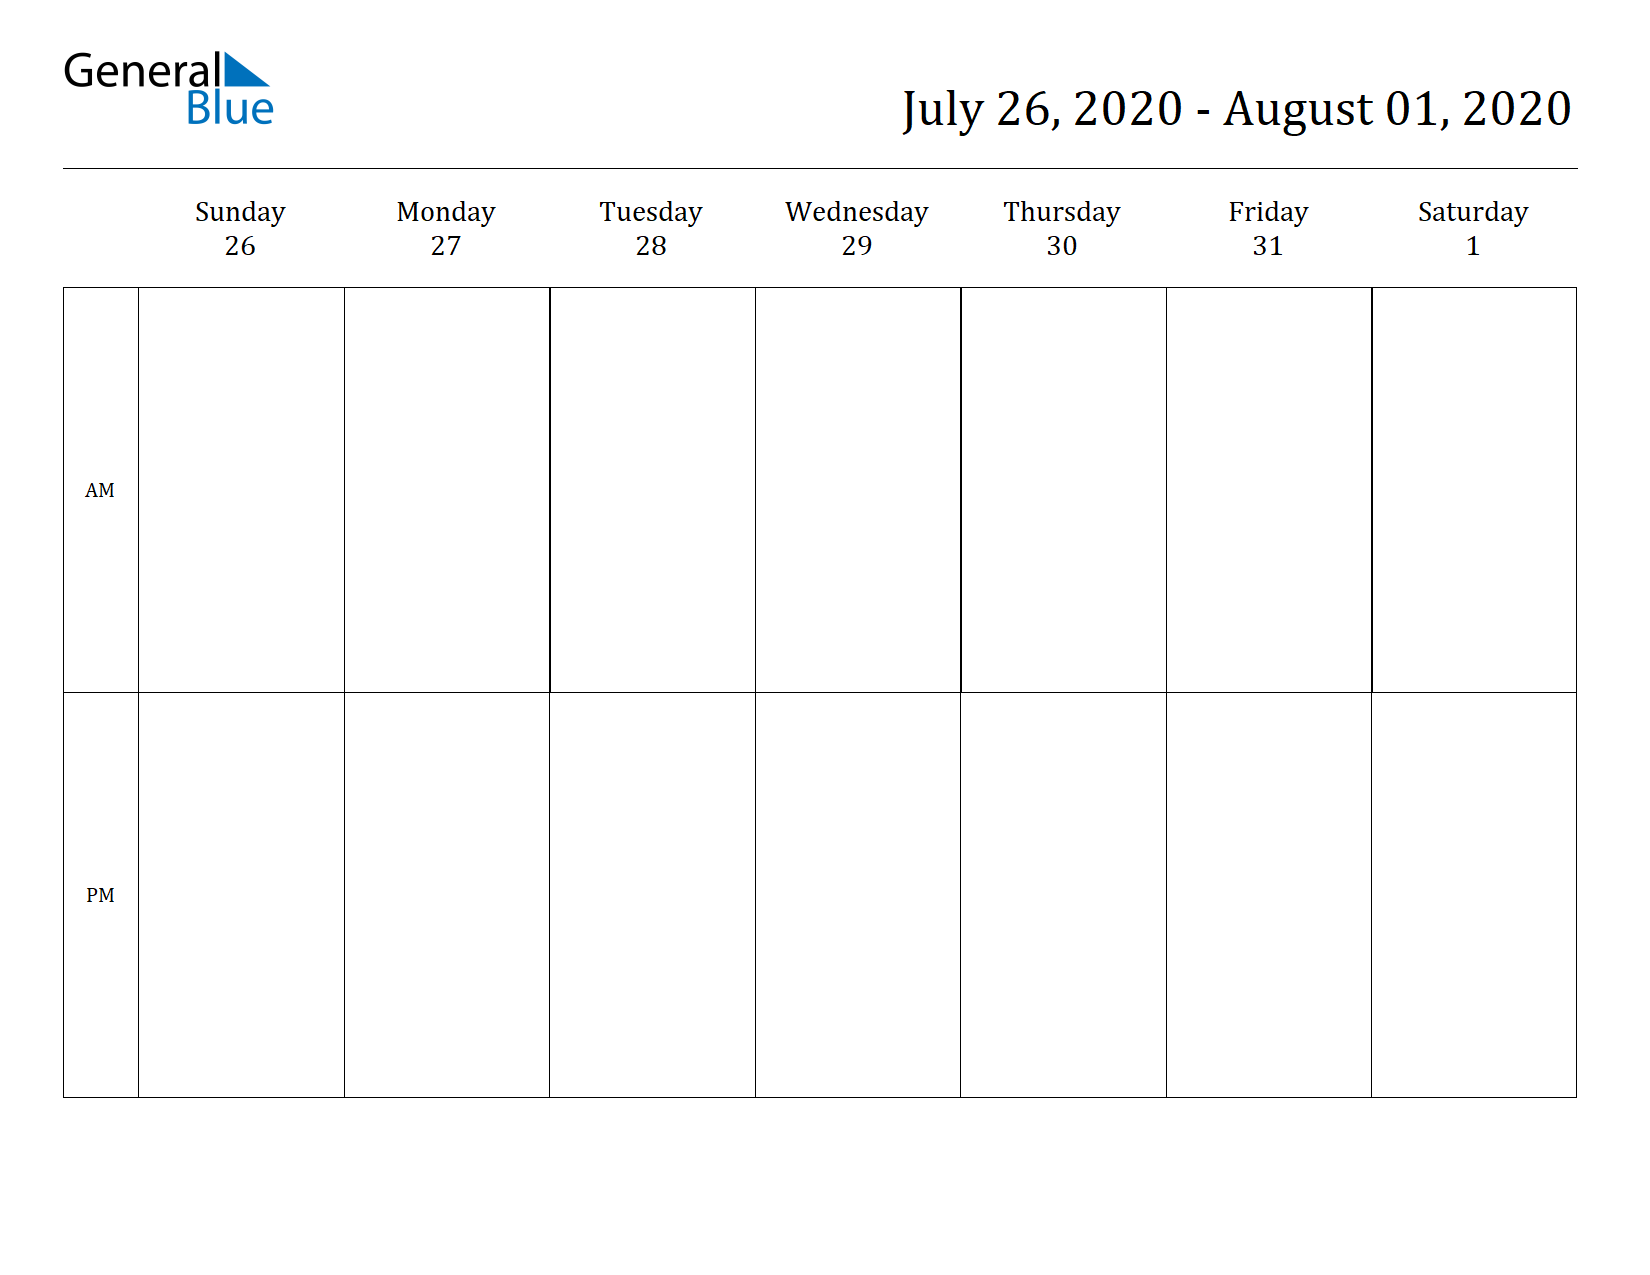 Weekly Calendar for Jul 26, 2020 to Aug 01, 2020